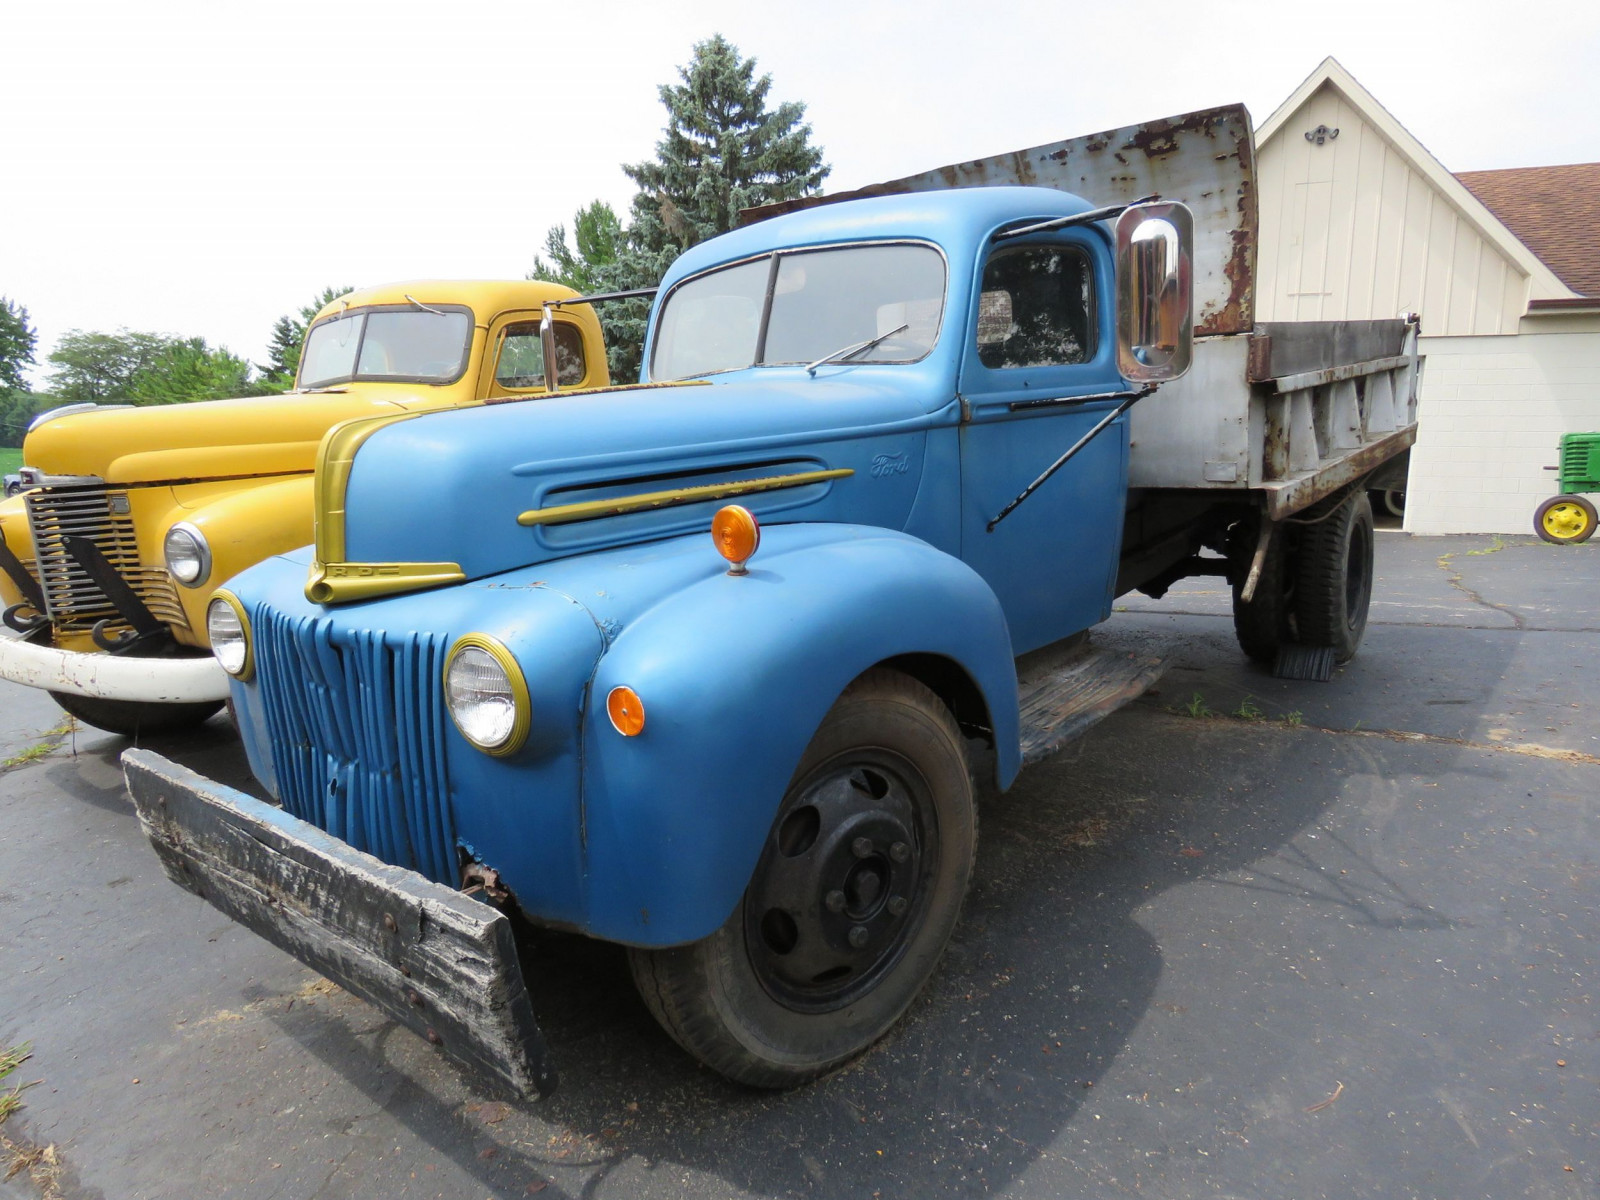 1946 Ford Dump Truck - Image 3